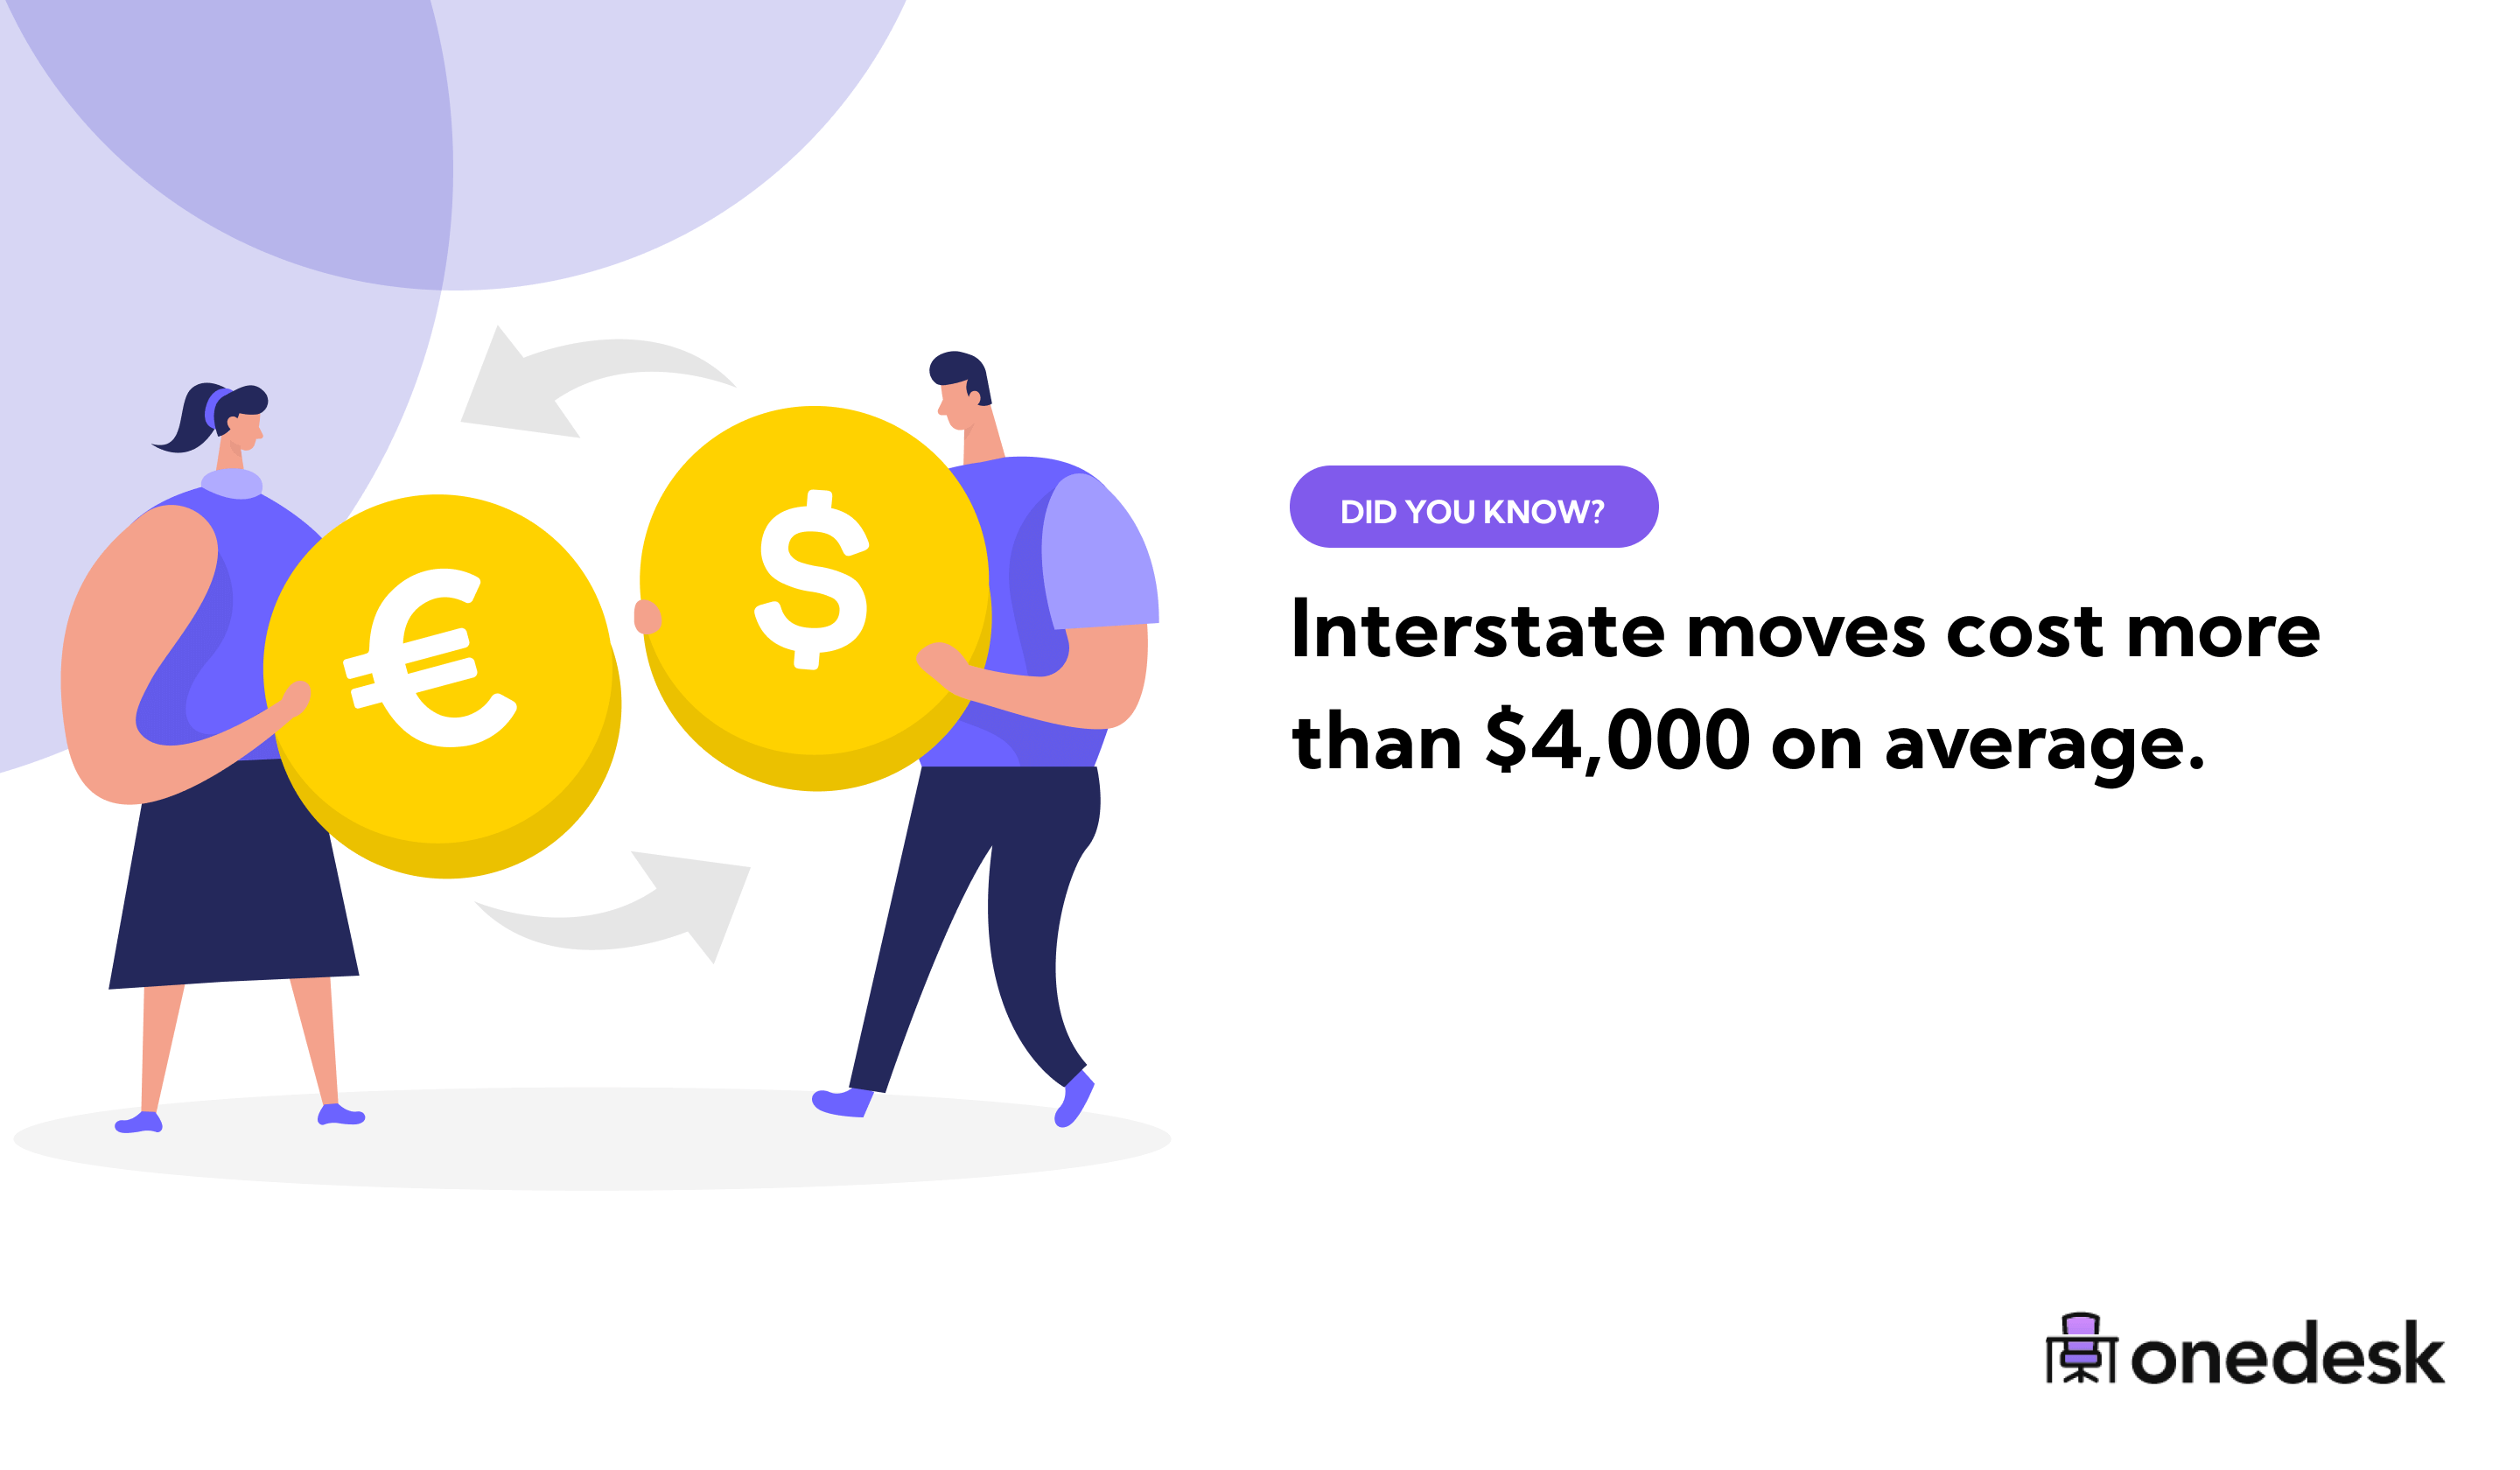 interstate moves cost $4,000 on average